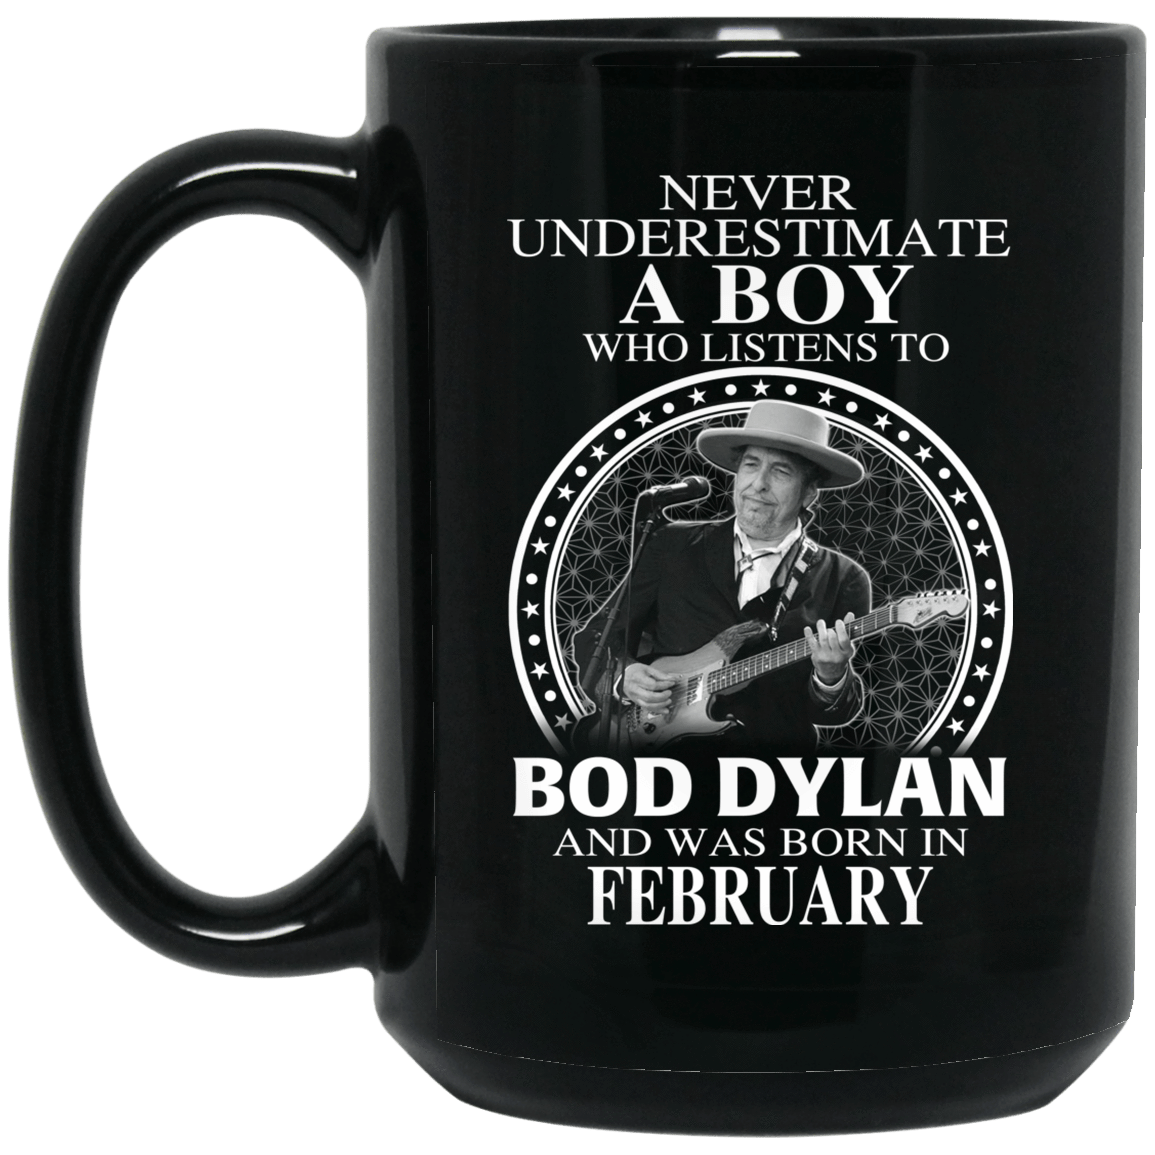 A Boy Who Listens To Bob Dylan And Was Born In February Mug 1066-10182-76153797-49311 - Tee Ript